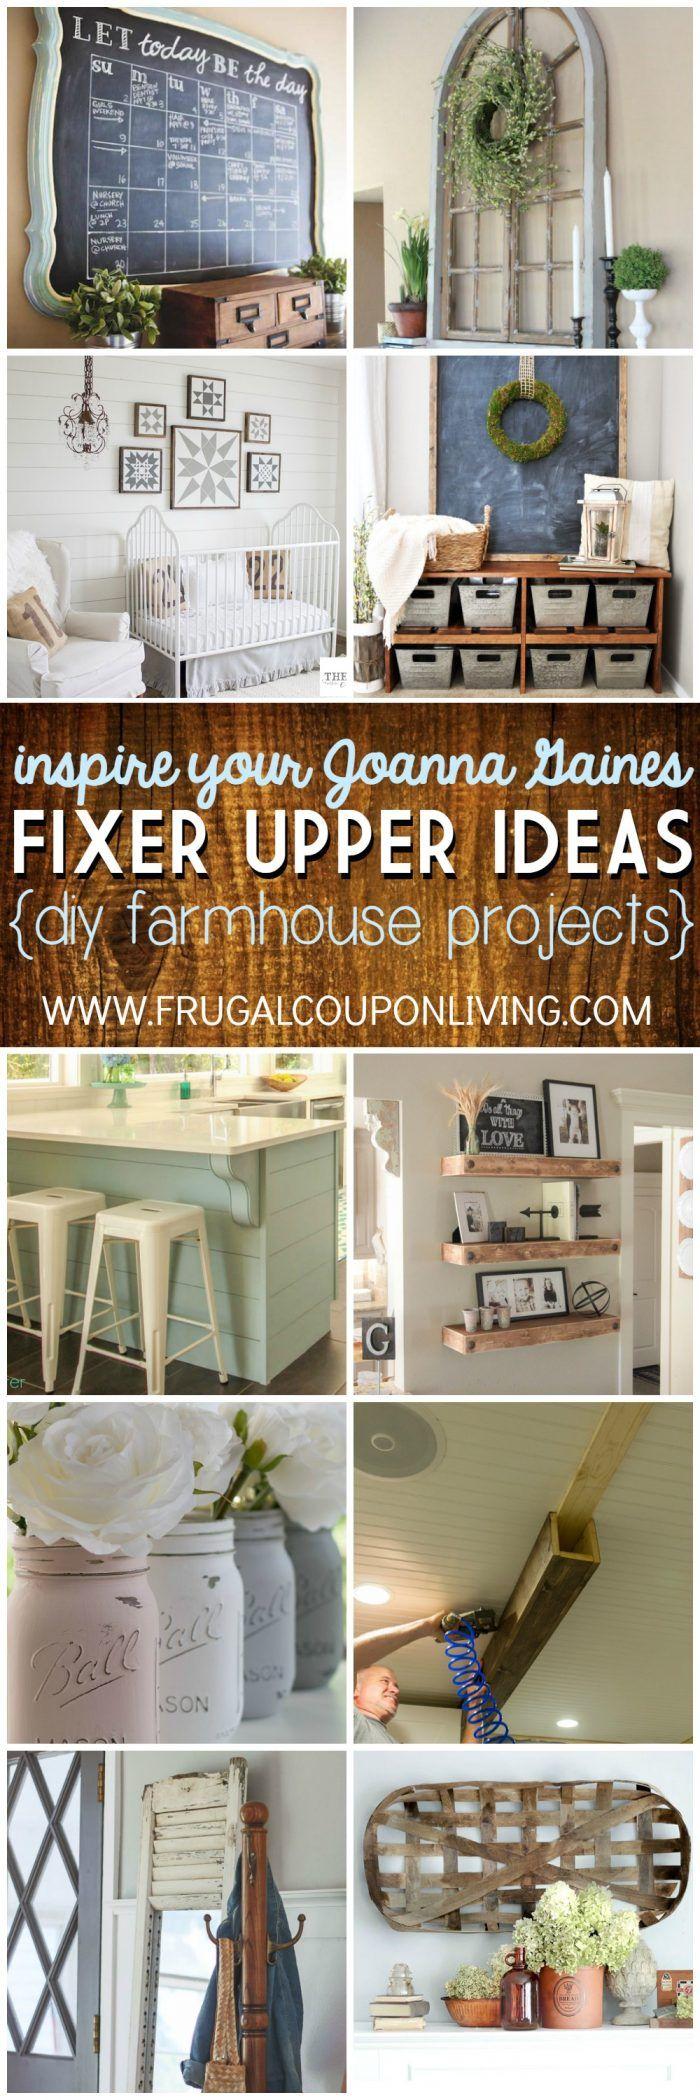 Inspire Your Joanna Gaines - DIY Fixer Upper Ideas on Frugal Coupon Living.